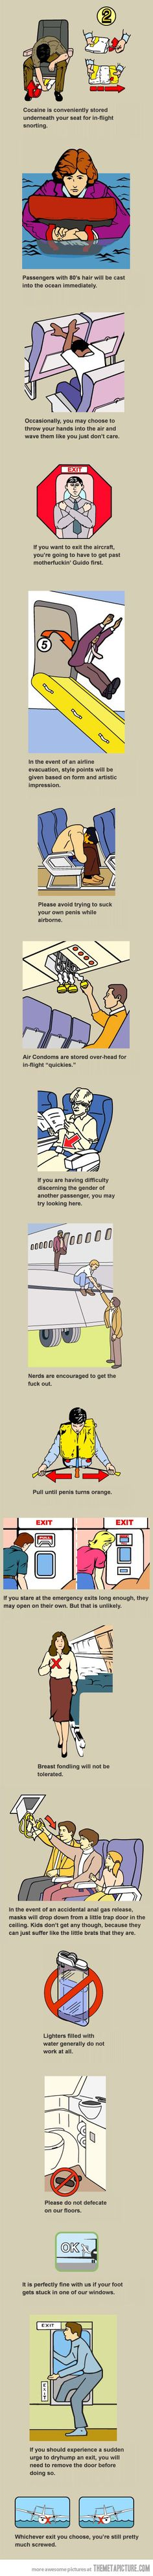 A whole other interpretation of the pictures in the airline safety brochure...